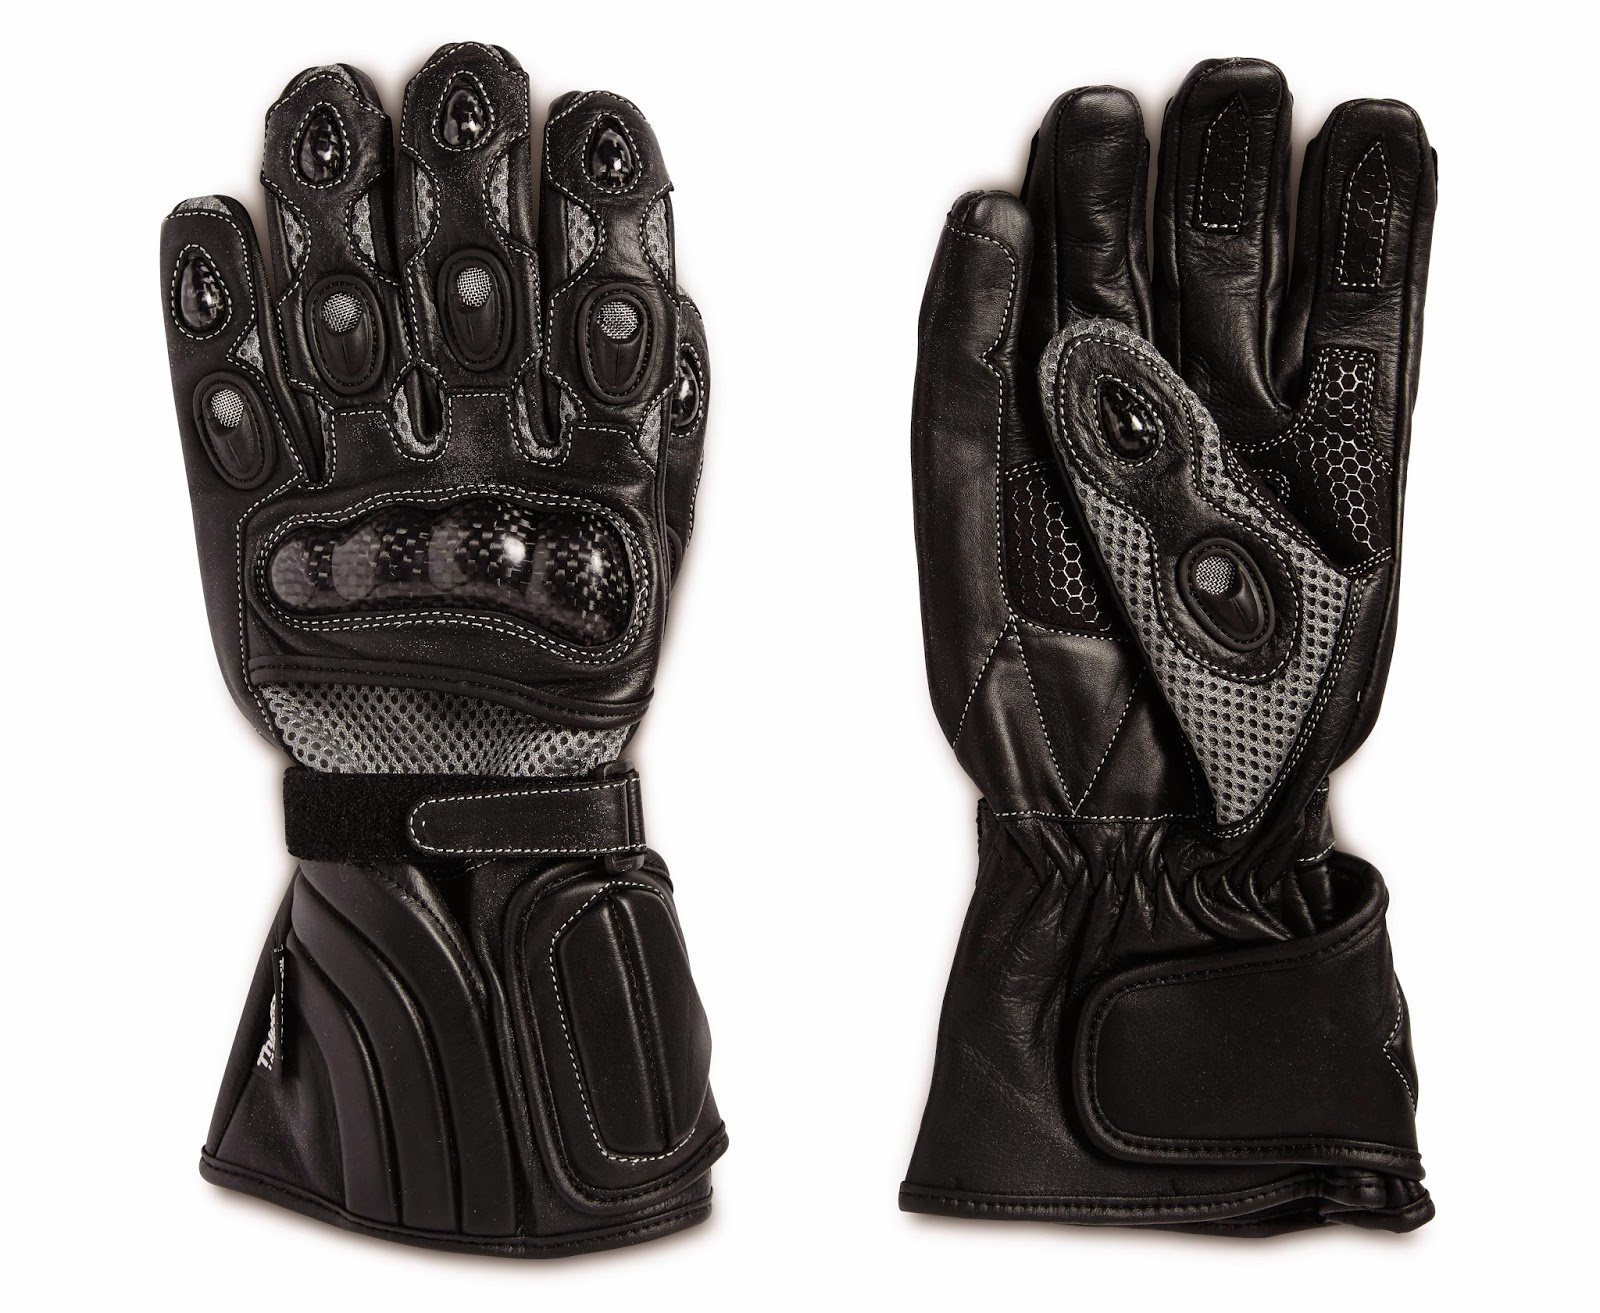 Motorcycle gloves kingston - Completing Your Exterior Safety Shell These Gloves Are An Absolute Steal They Feature A Carbon Fibre Knuckle Which Made Us What To Try To Punch Holes In